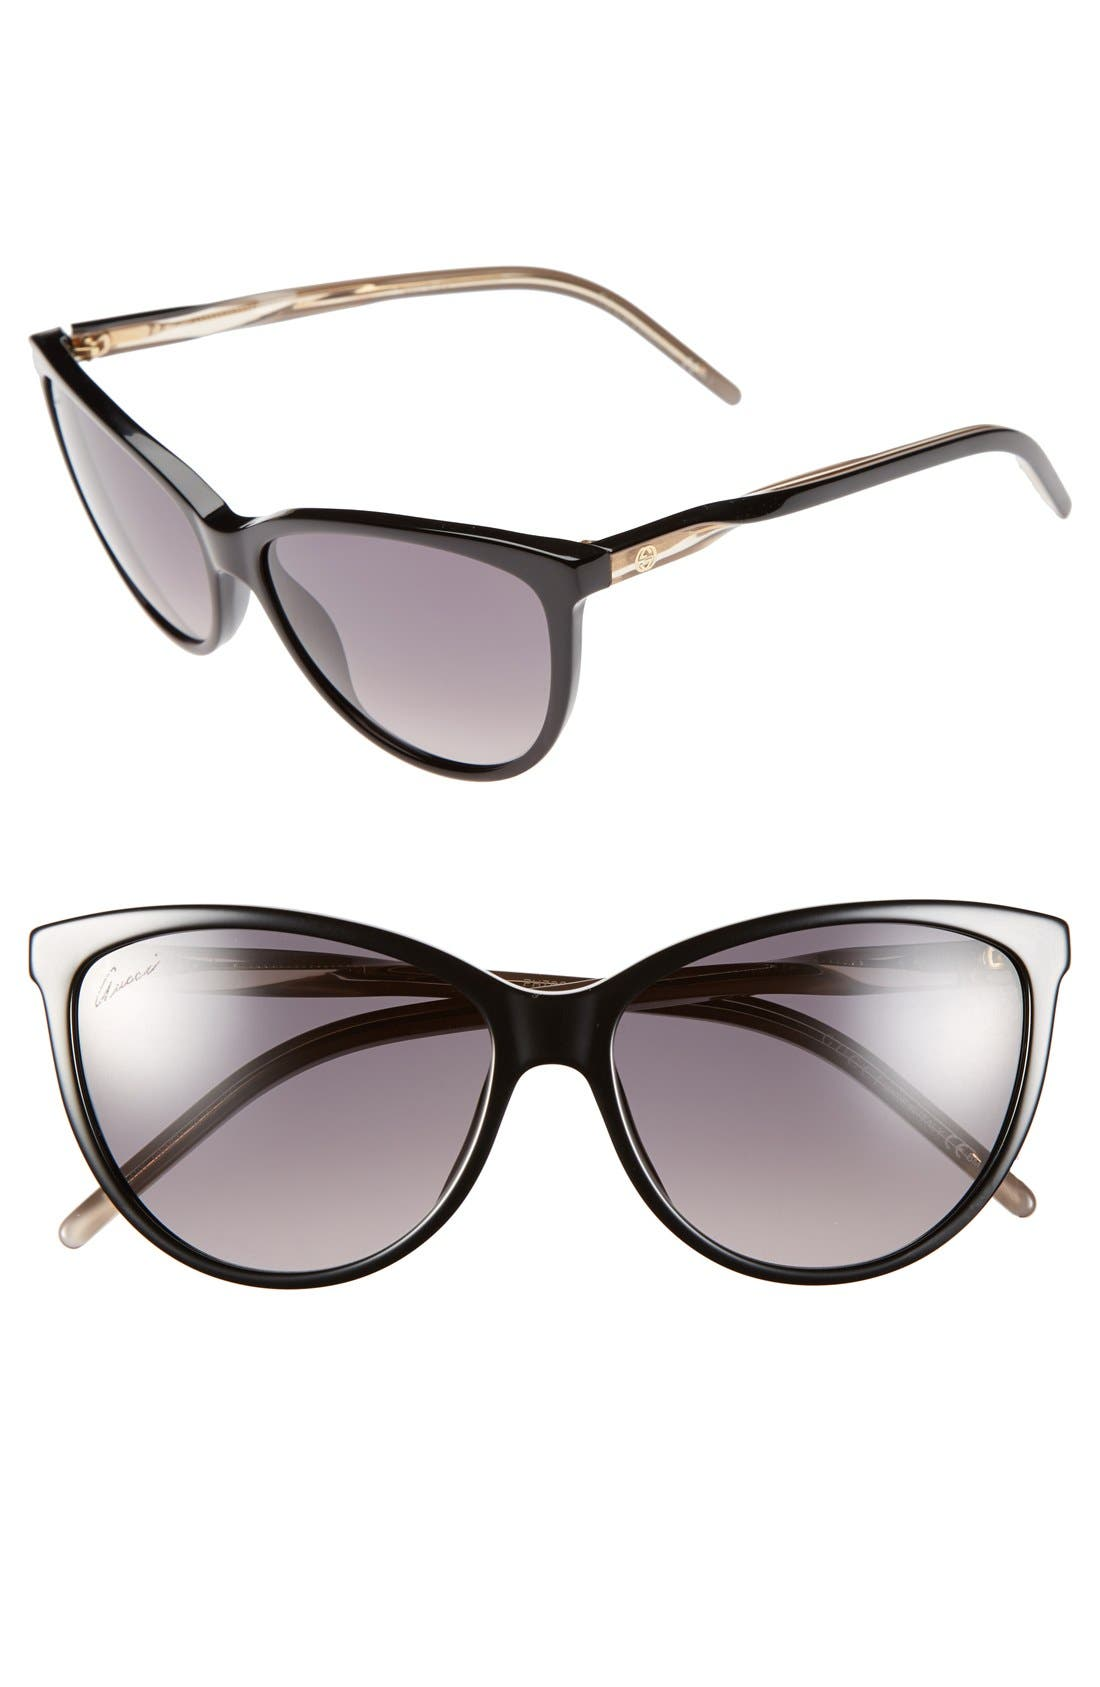 Main Image - Gucci 58mm Cat Eye Sunglasses